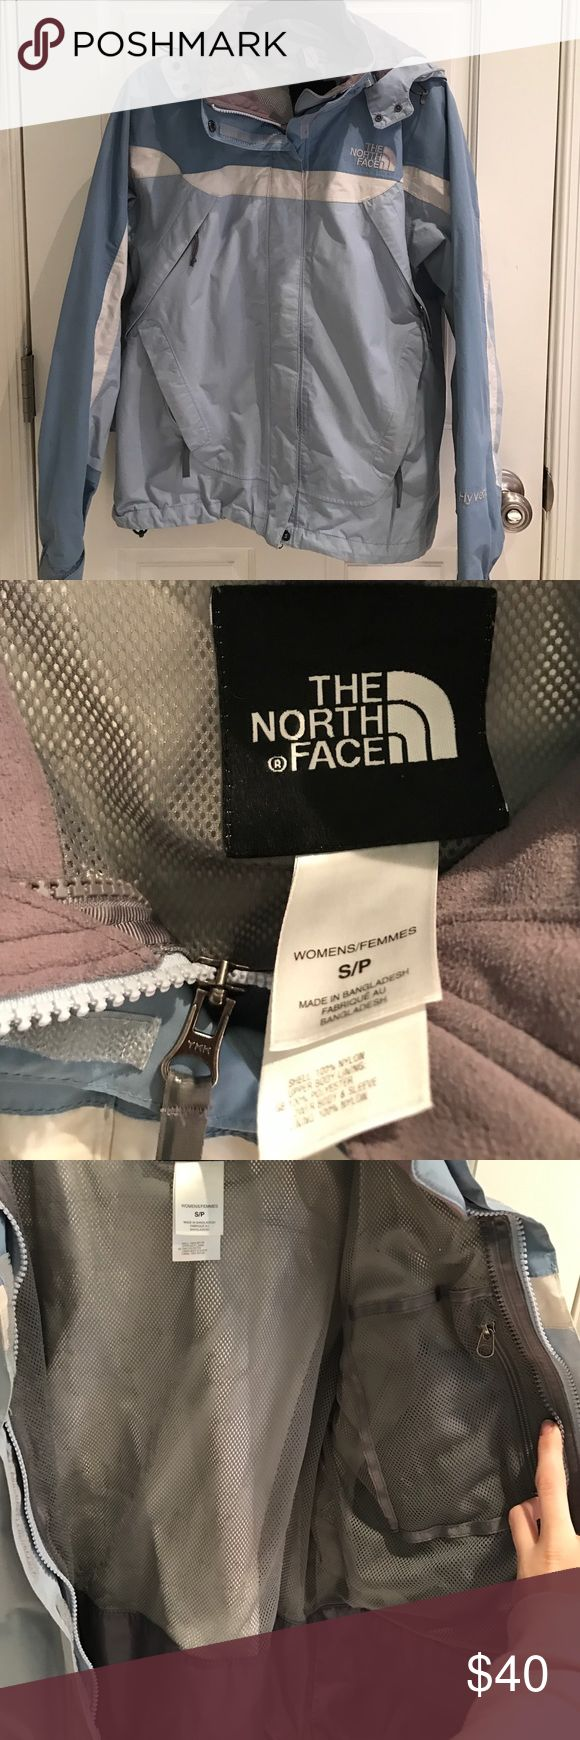 The North Face Light Blue Hyvent Winter Coat Great condition. Super warm water resistant coat. Great for winter. The North Face Jackets & Coats Puffers